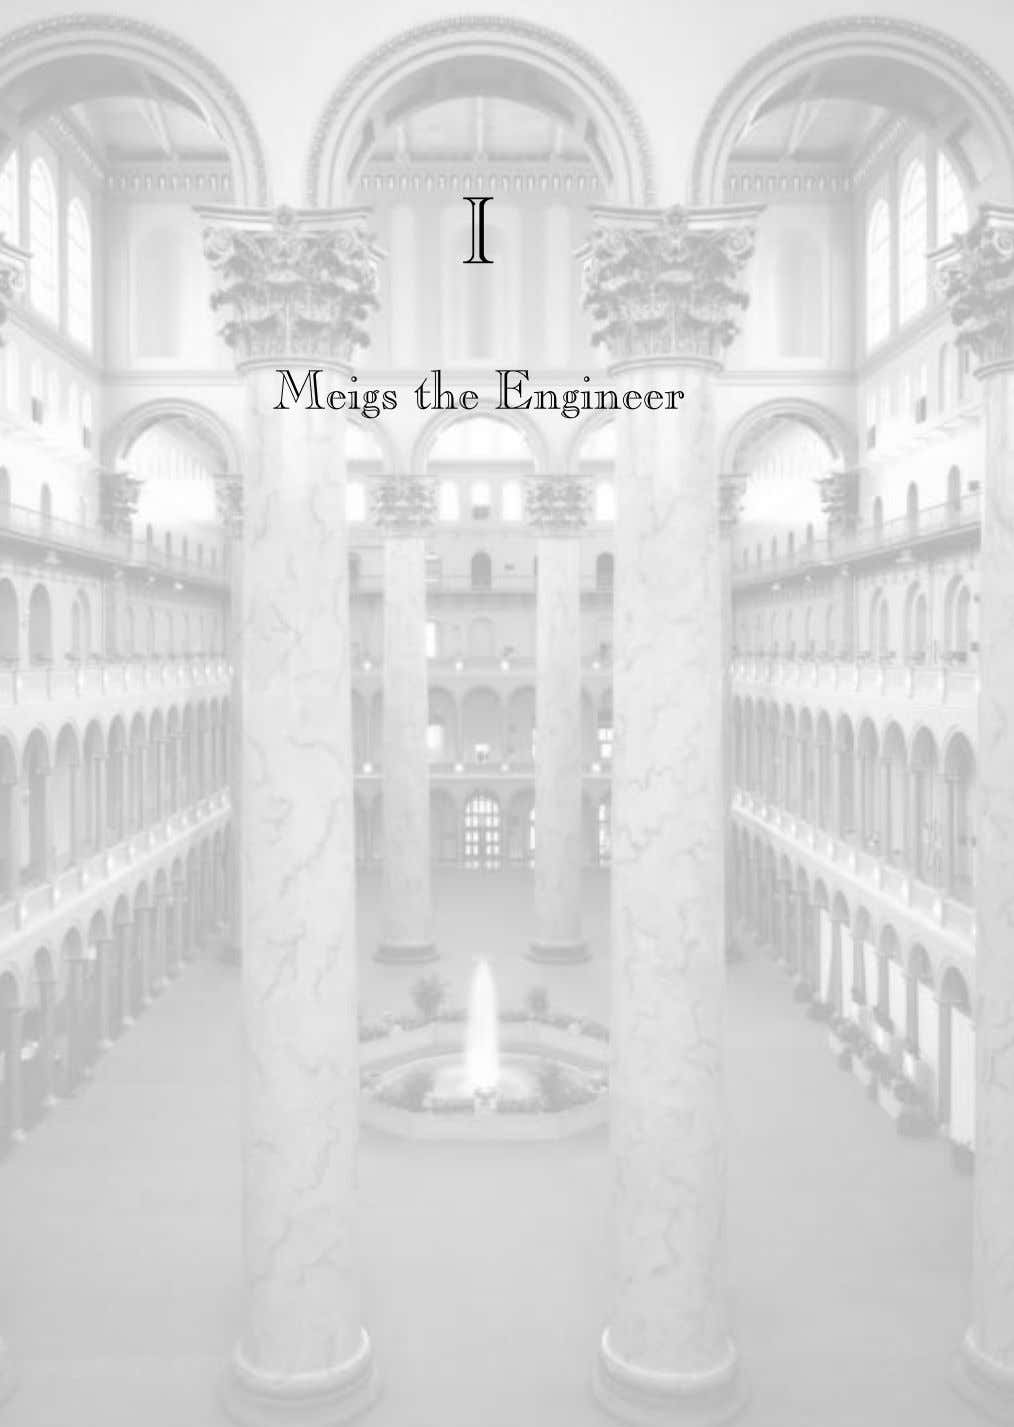 I Meigs the Engineer